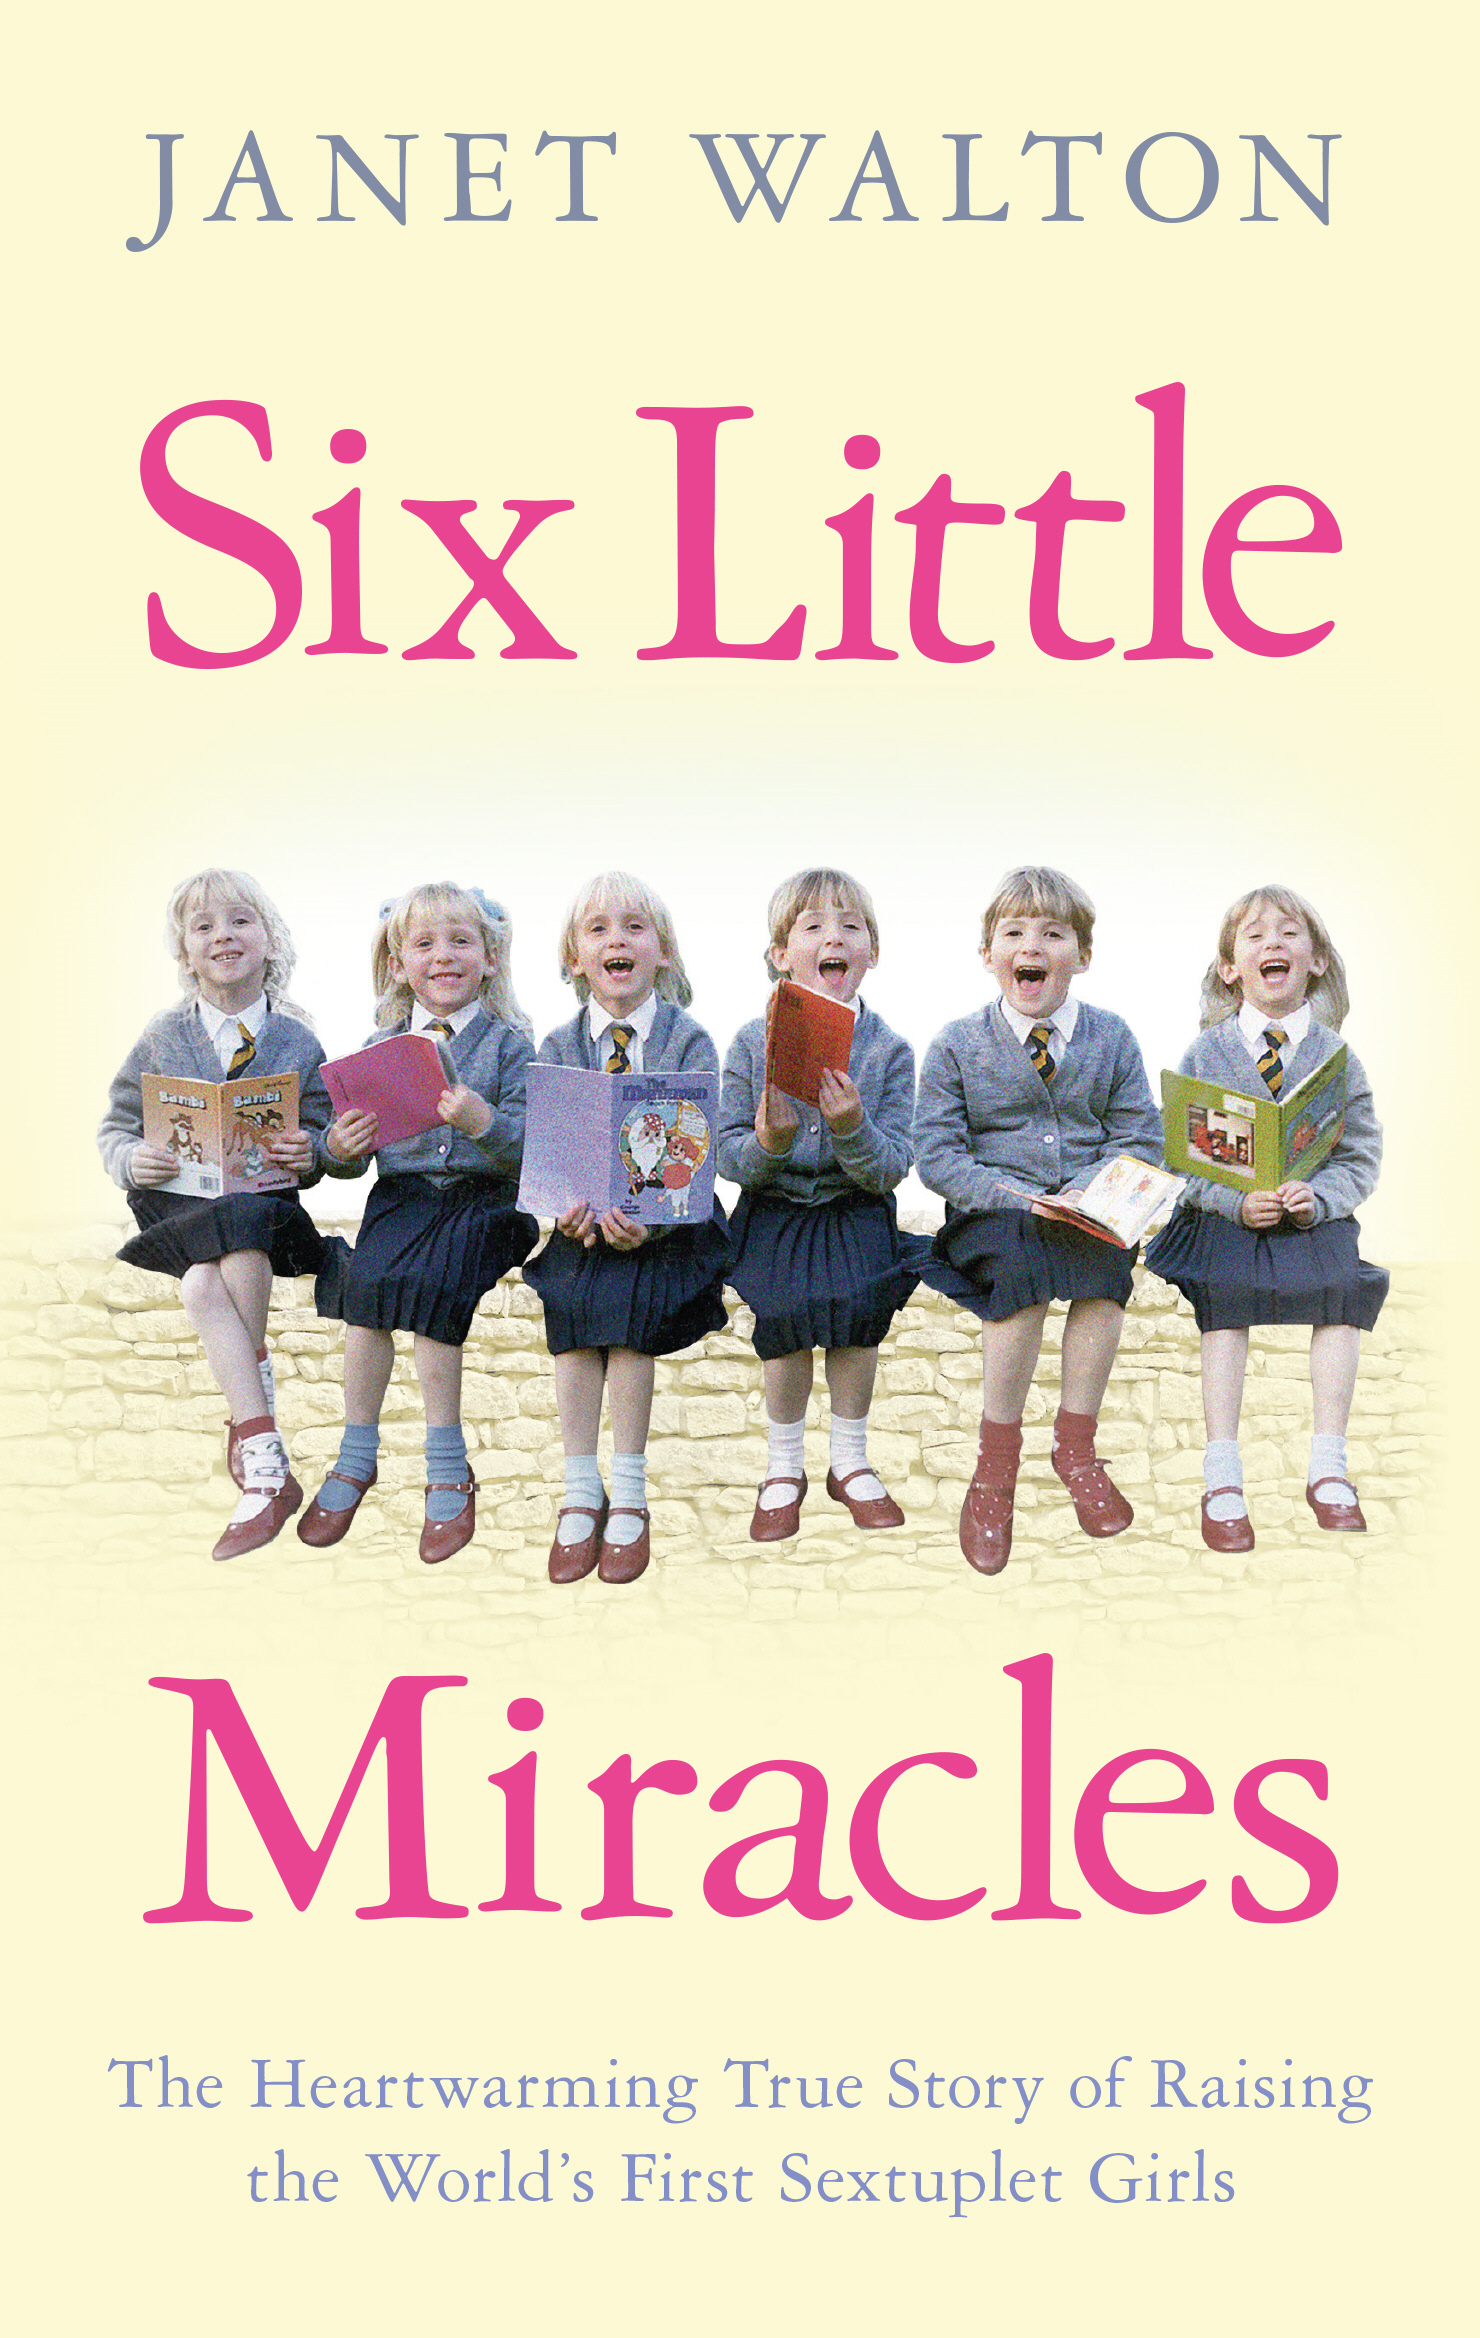 Six Little Miracles The Heartwarming True Story of Raising the World's First Sextuplet Girls